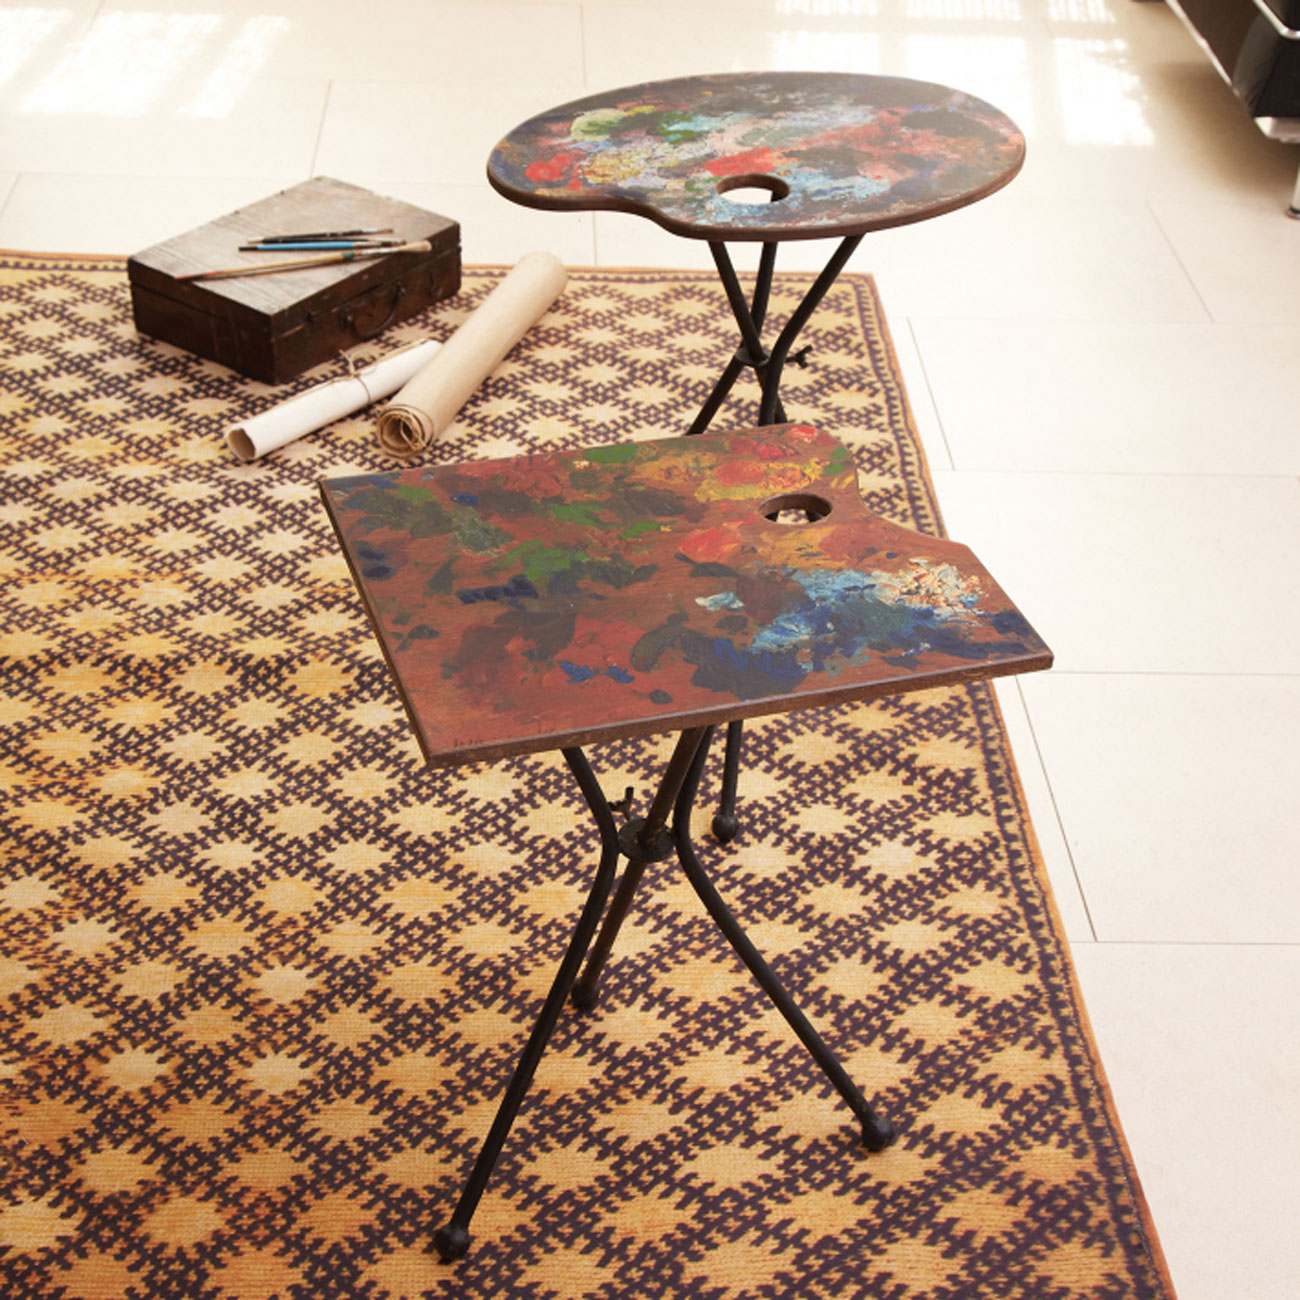 palette table Dransfield and Ross